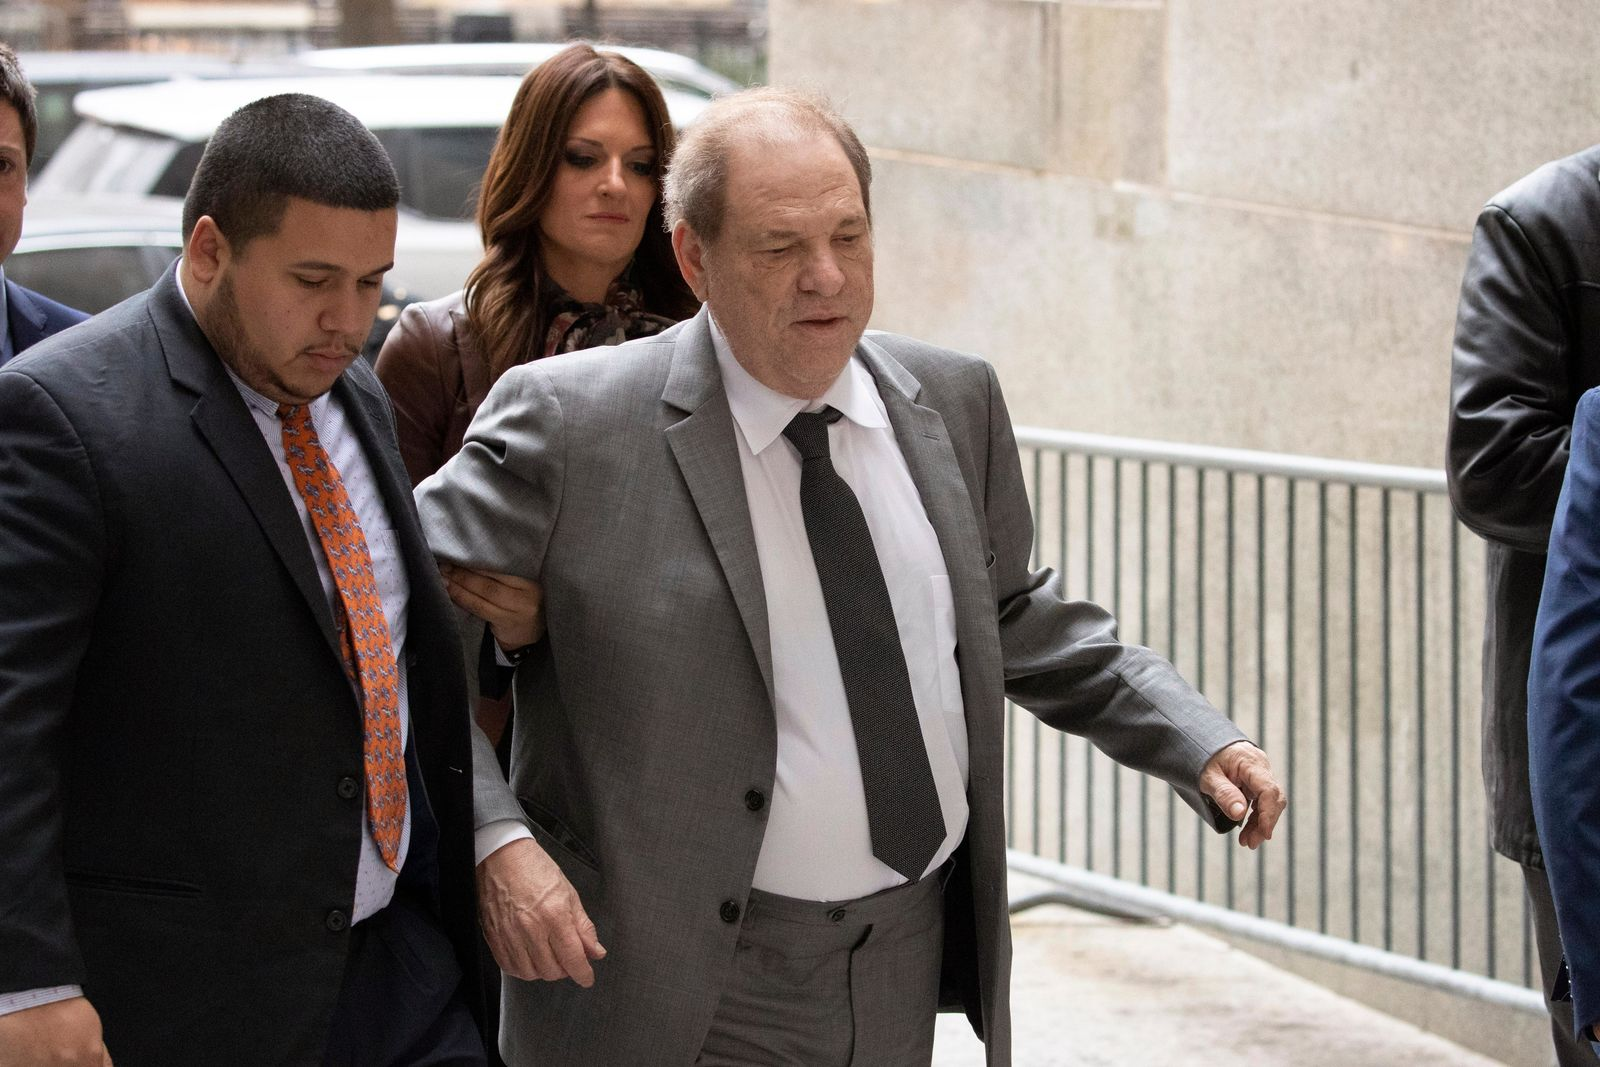 Harvey Weinstein, right, arrives at court for a bail hearing, Friday, Dec. 6, 2019 in New York. (AP Photo/Mark Lennihan)